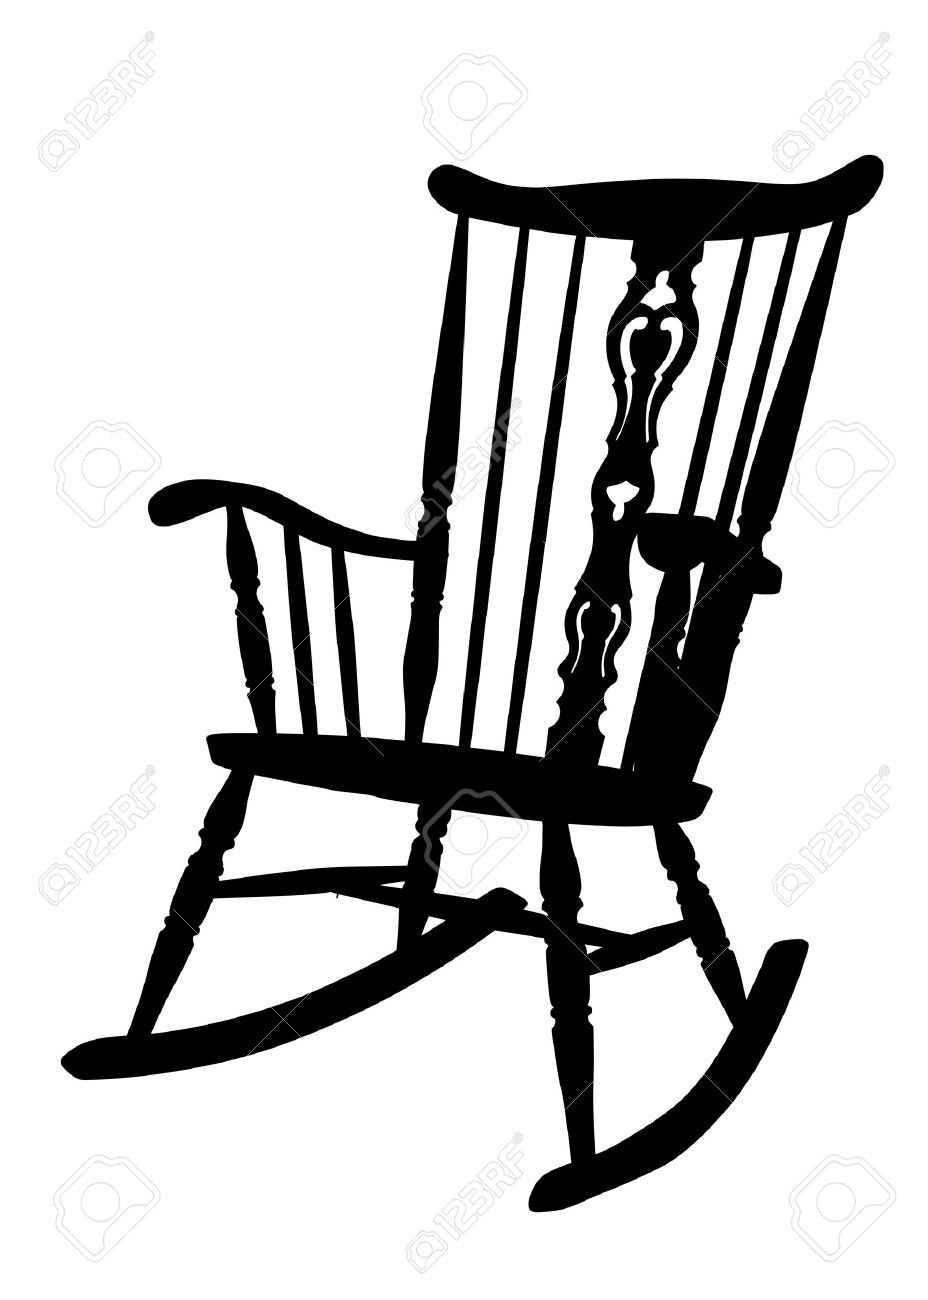 Free Vector Graphic Rocking Chair Rocker Drawing Image On Pixabay